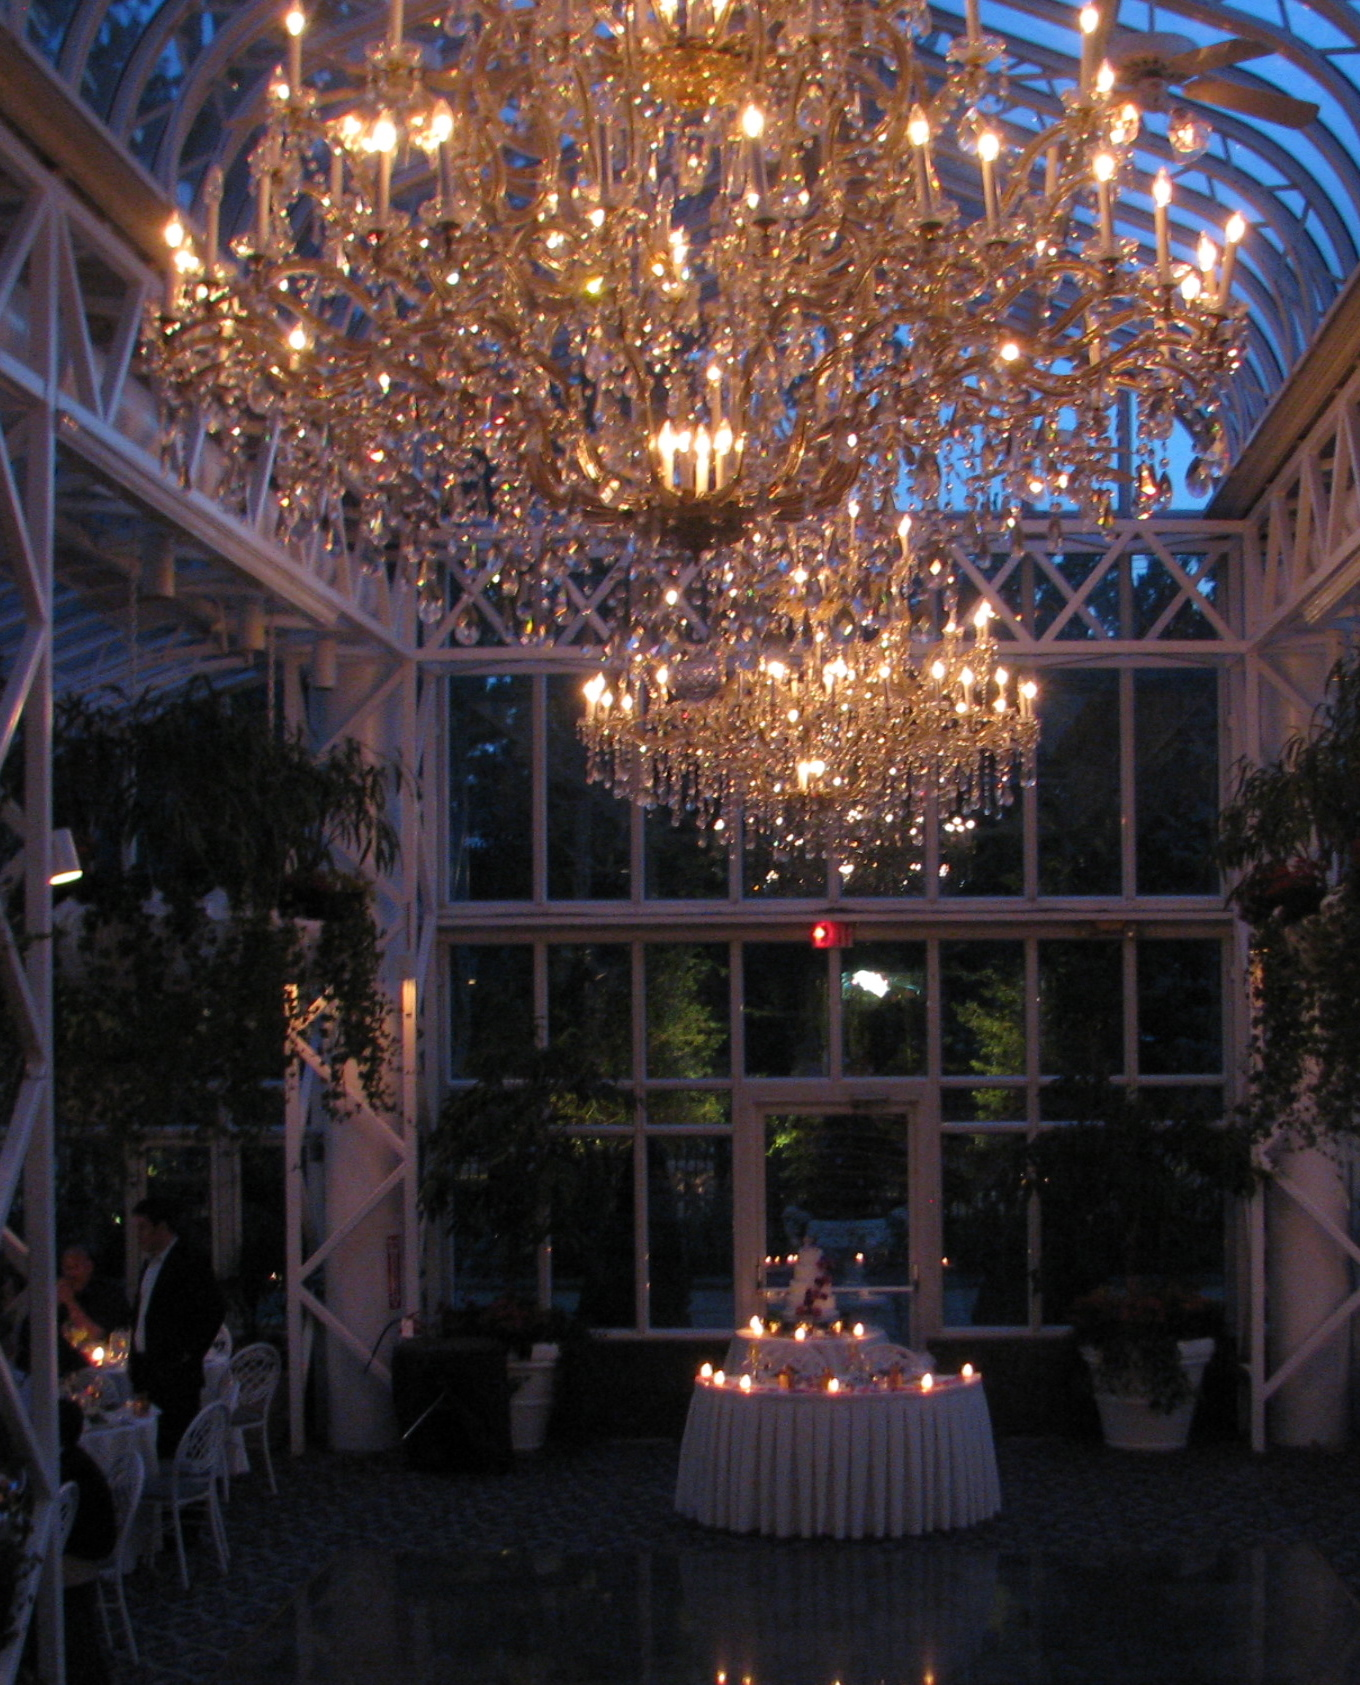 Elegant party event and wedding venue fun rhode island wedding elegant party event and wedding venue junglespirit Choice Image